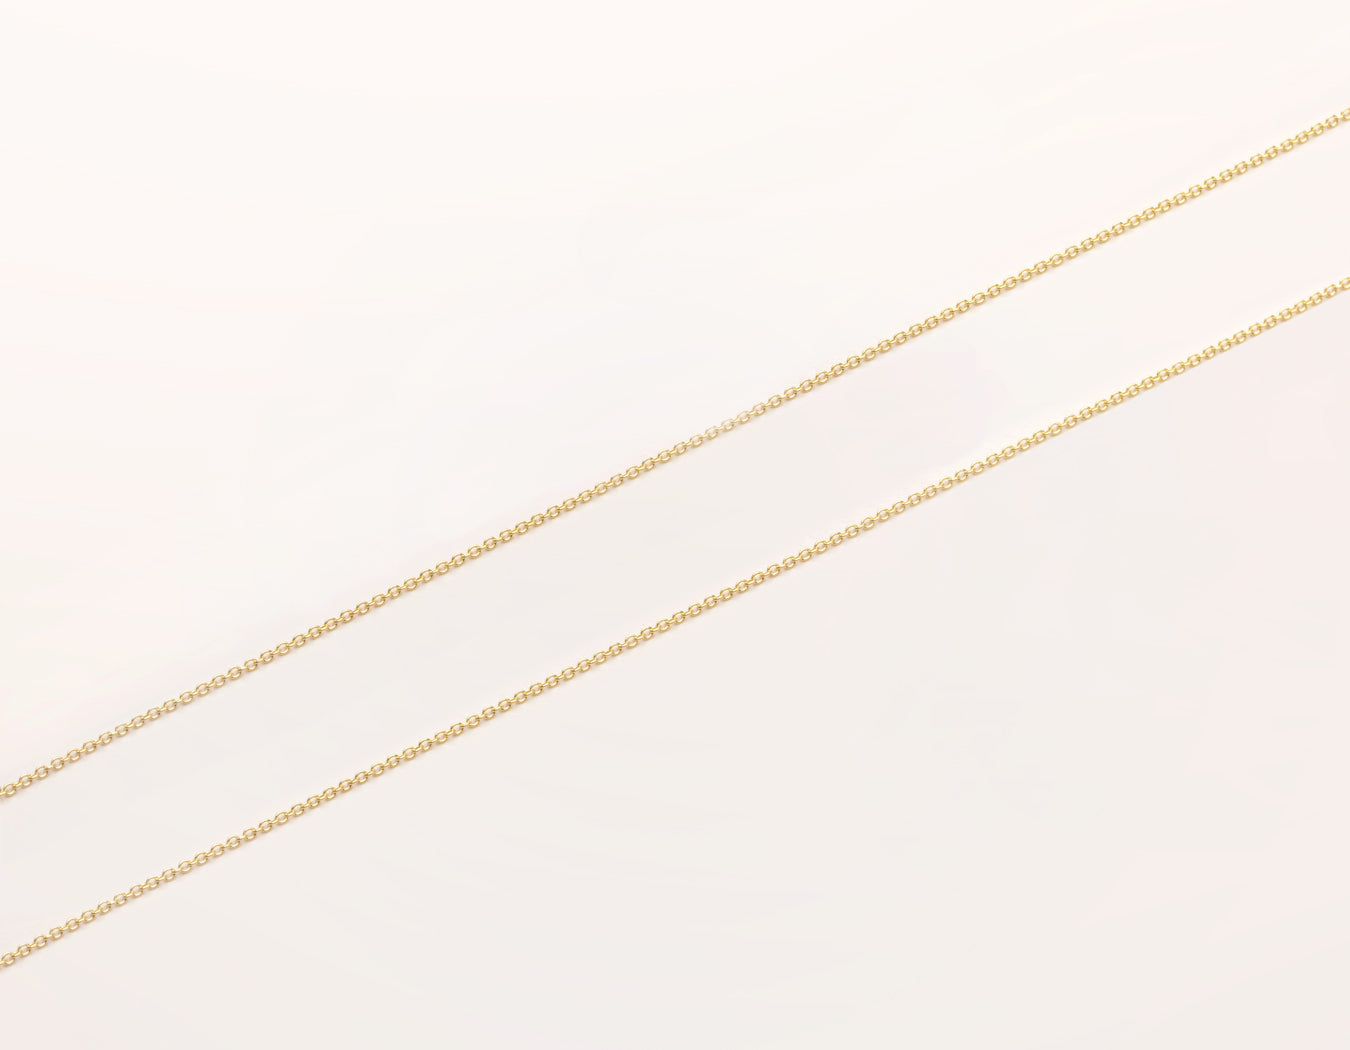 Vrai and Oro Oval Link Chain 14k Solid yellow gold